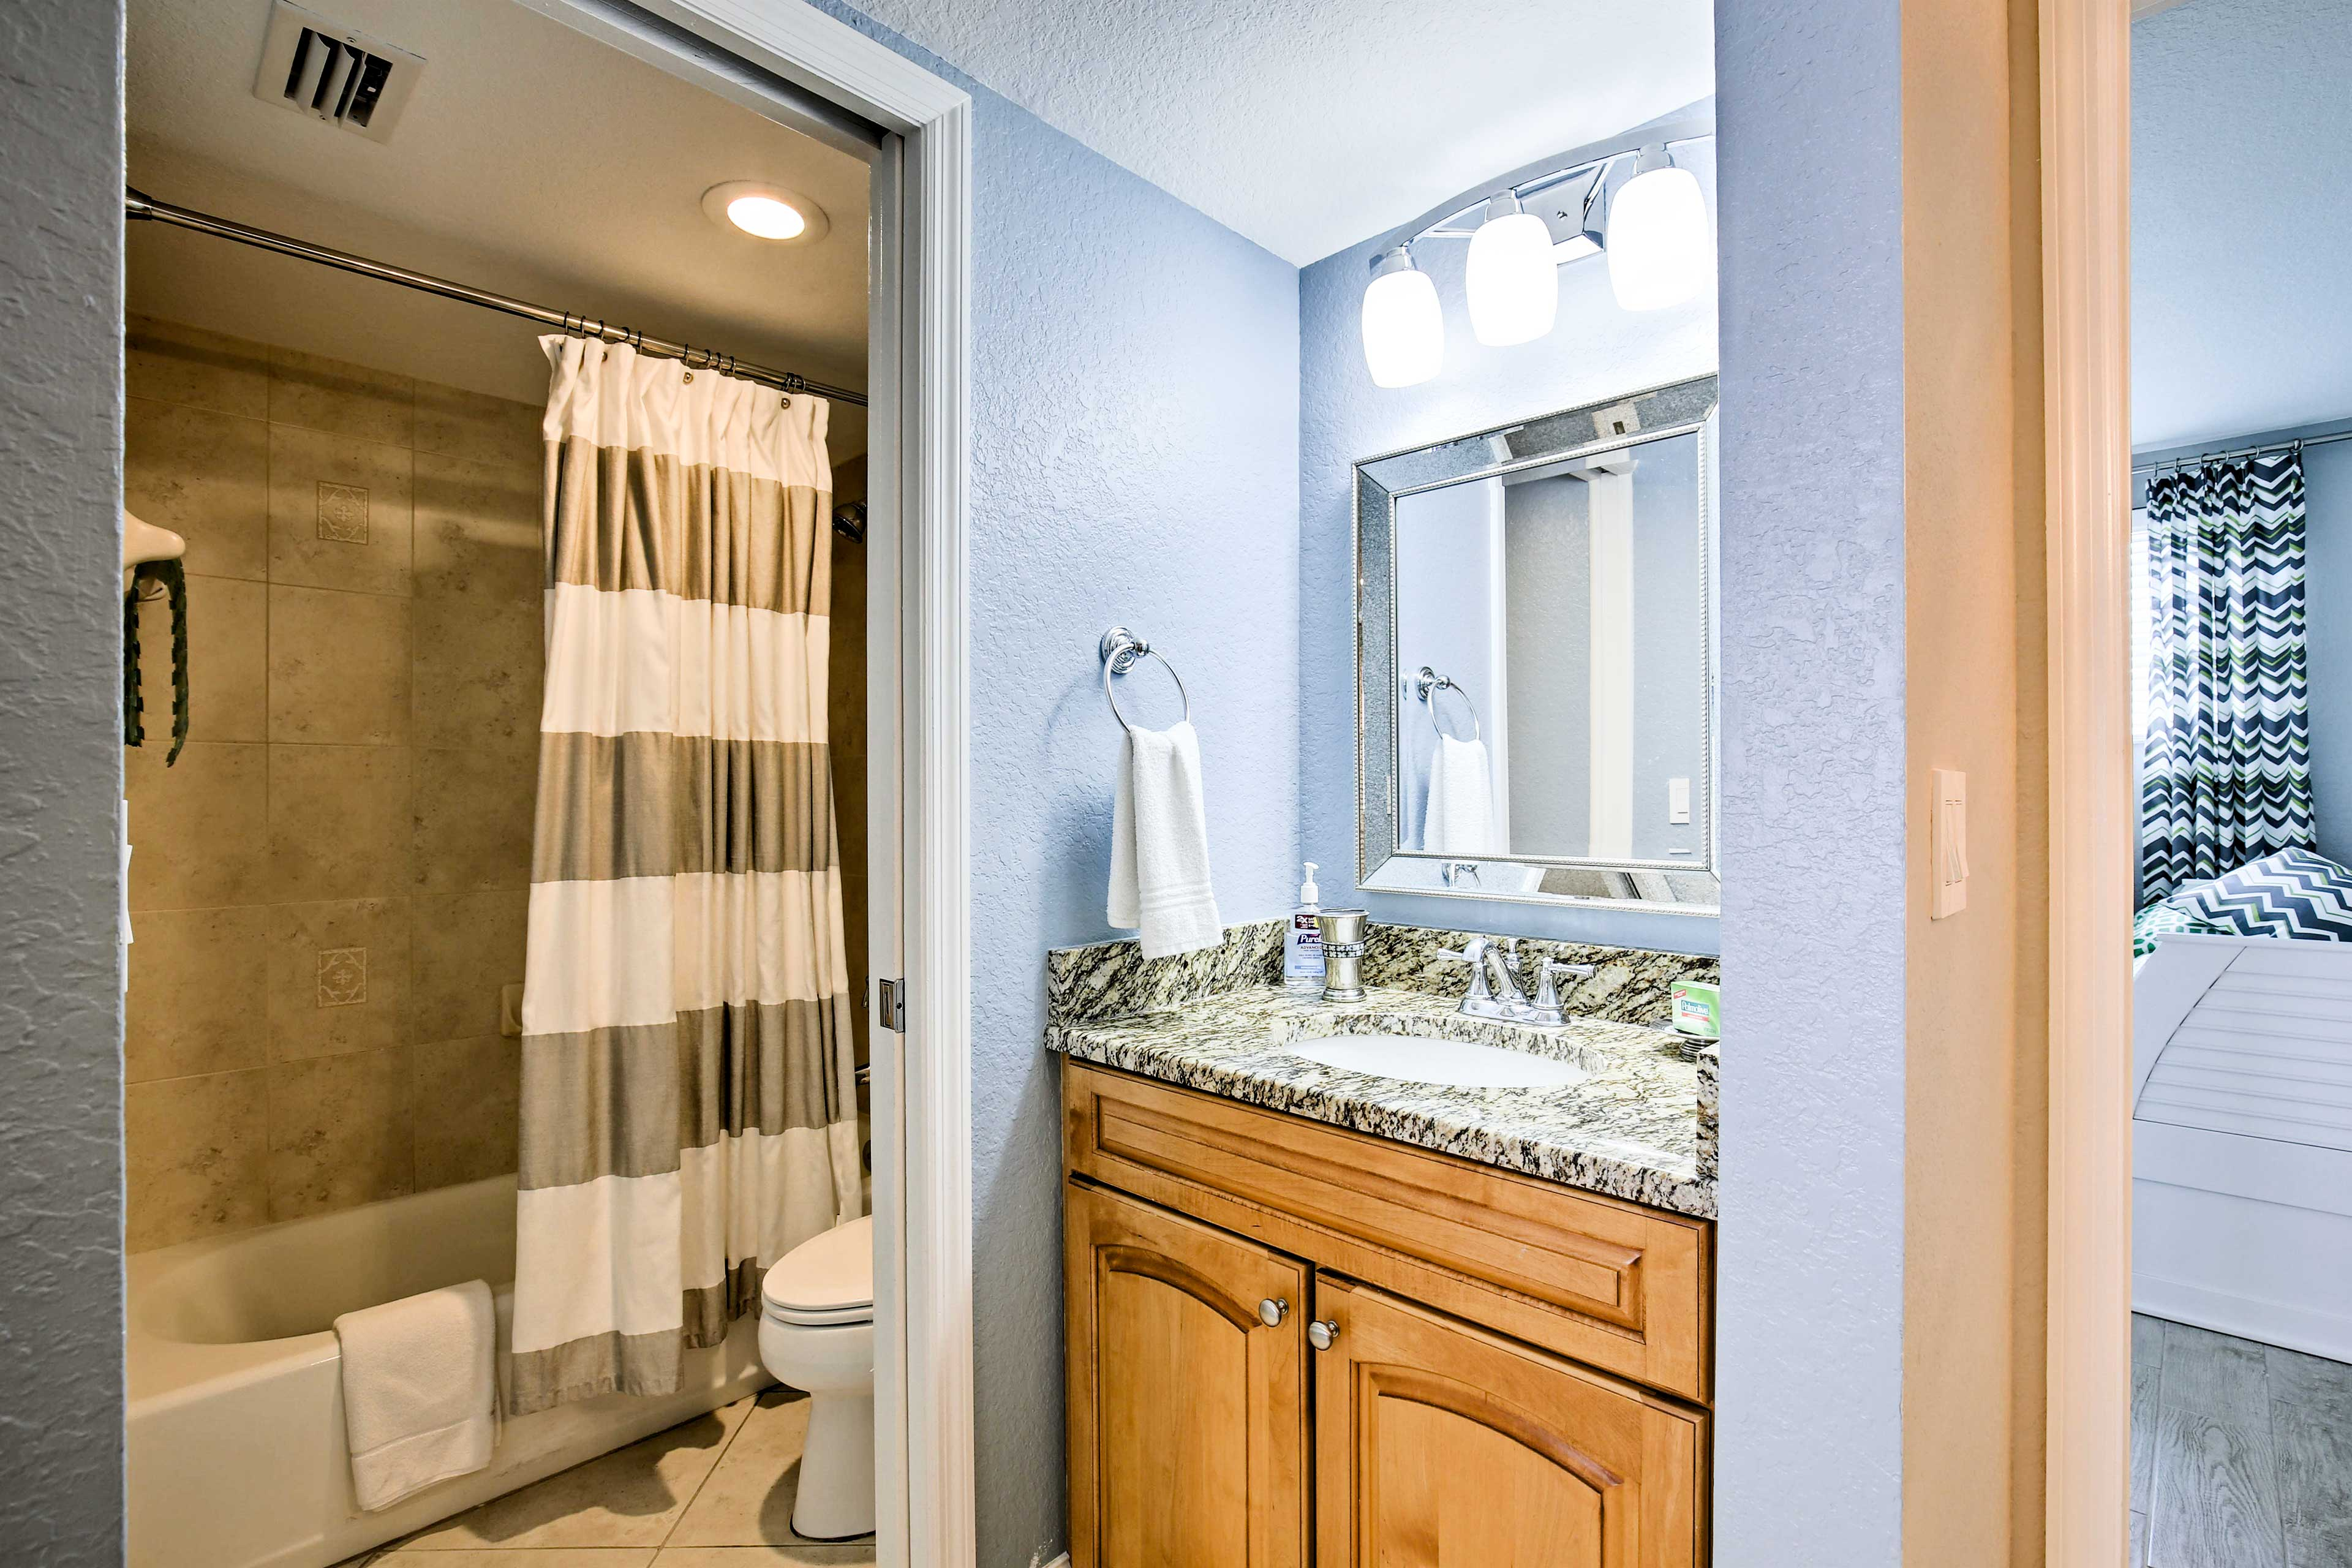 This second full bathroom features a tub/shower combo and separate powder area.